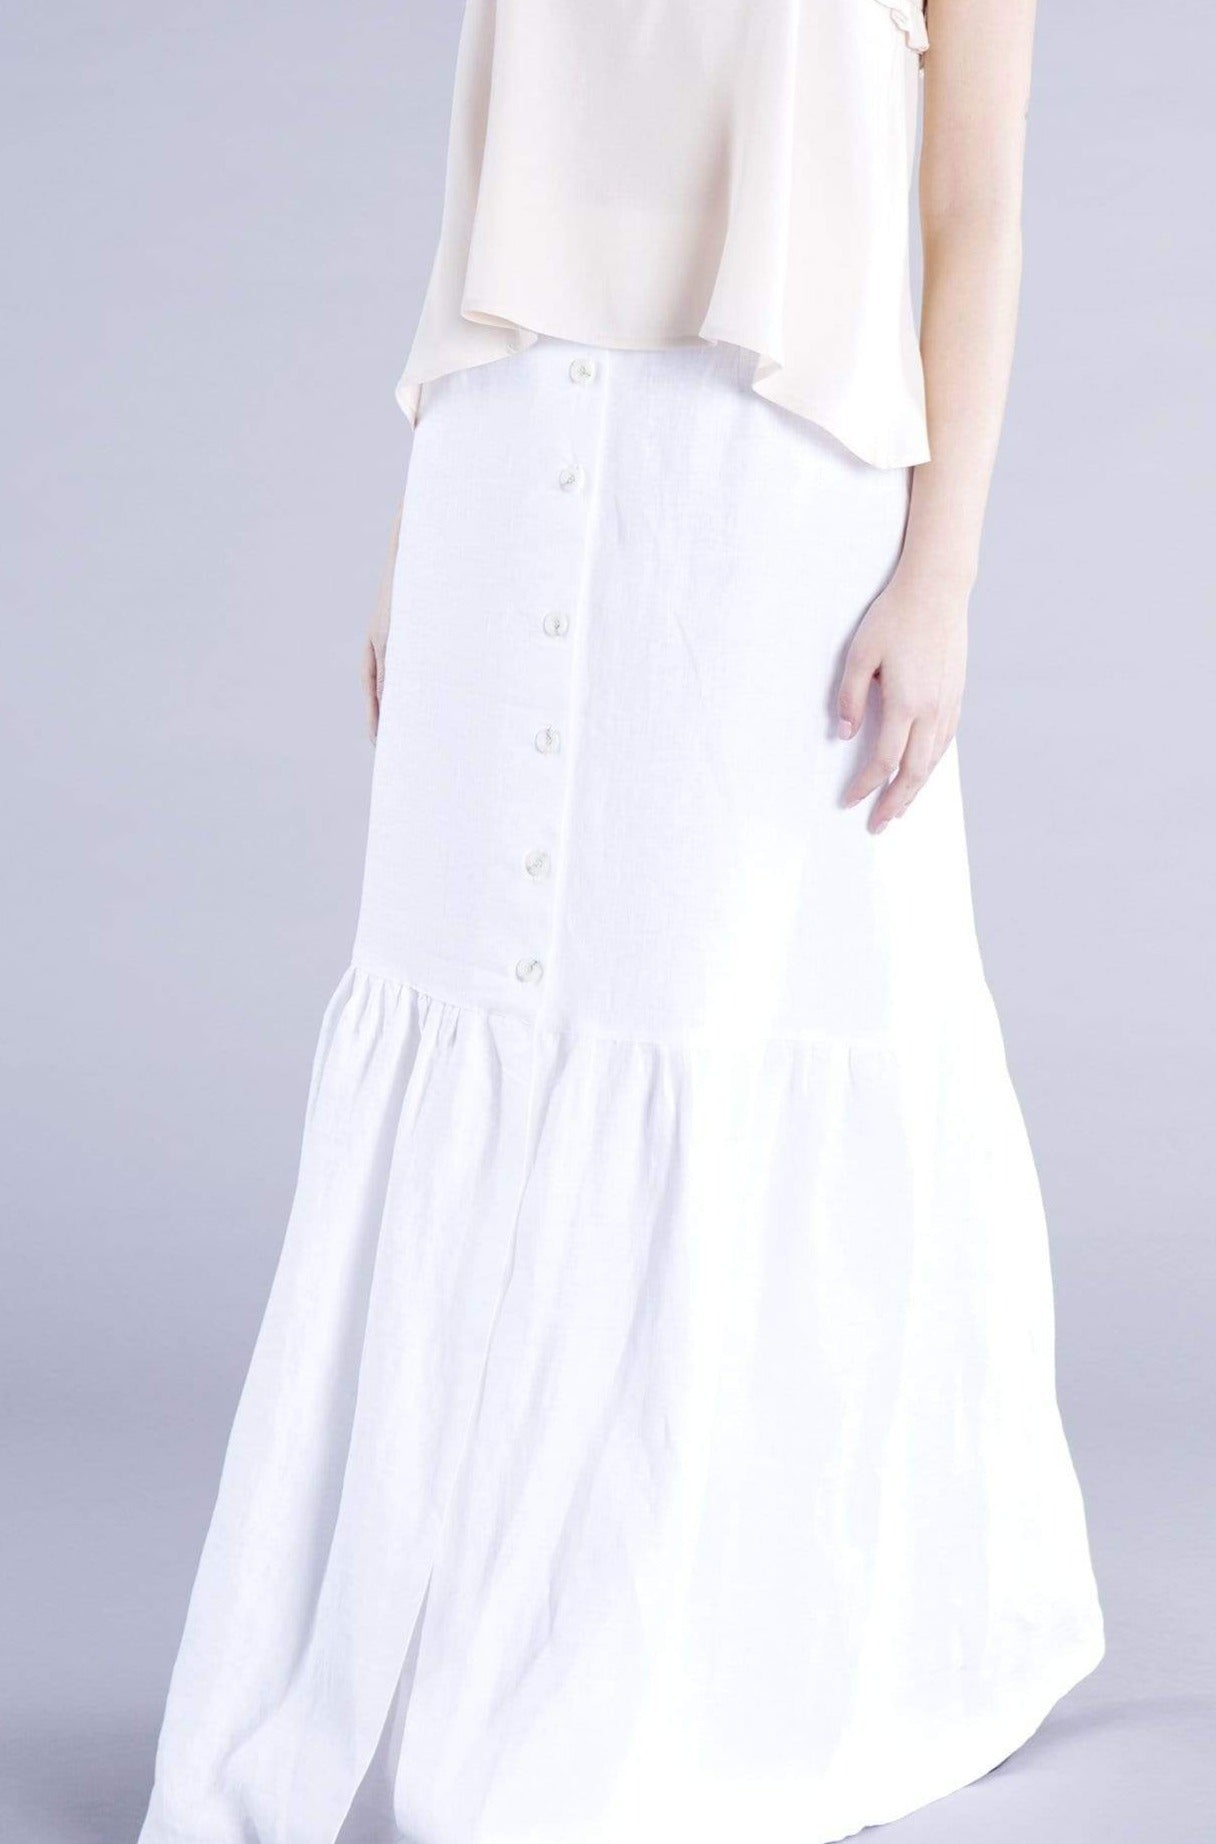 Souldaze Collection skirt Bonita Skirt. Surplus Linen. sustainable fashion ethical fashion